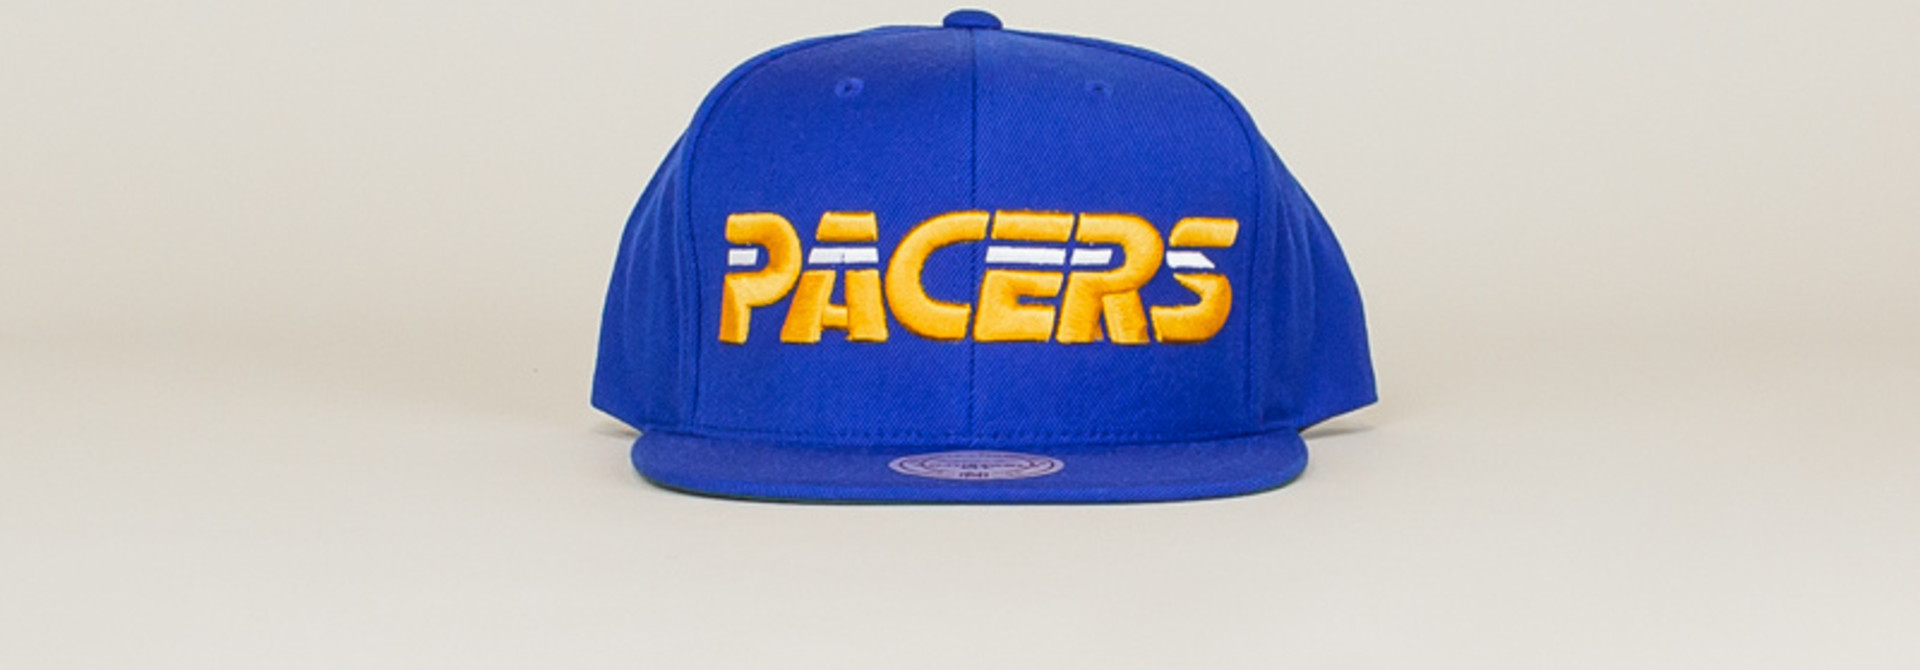 Mitchell & Ness Pacers Wool Solid Hat - Blue